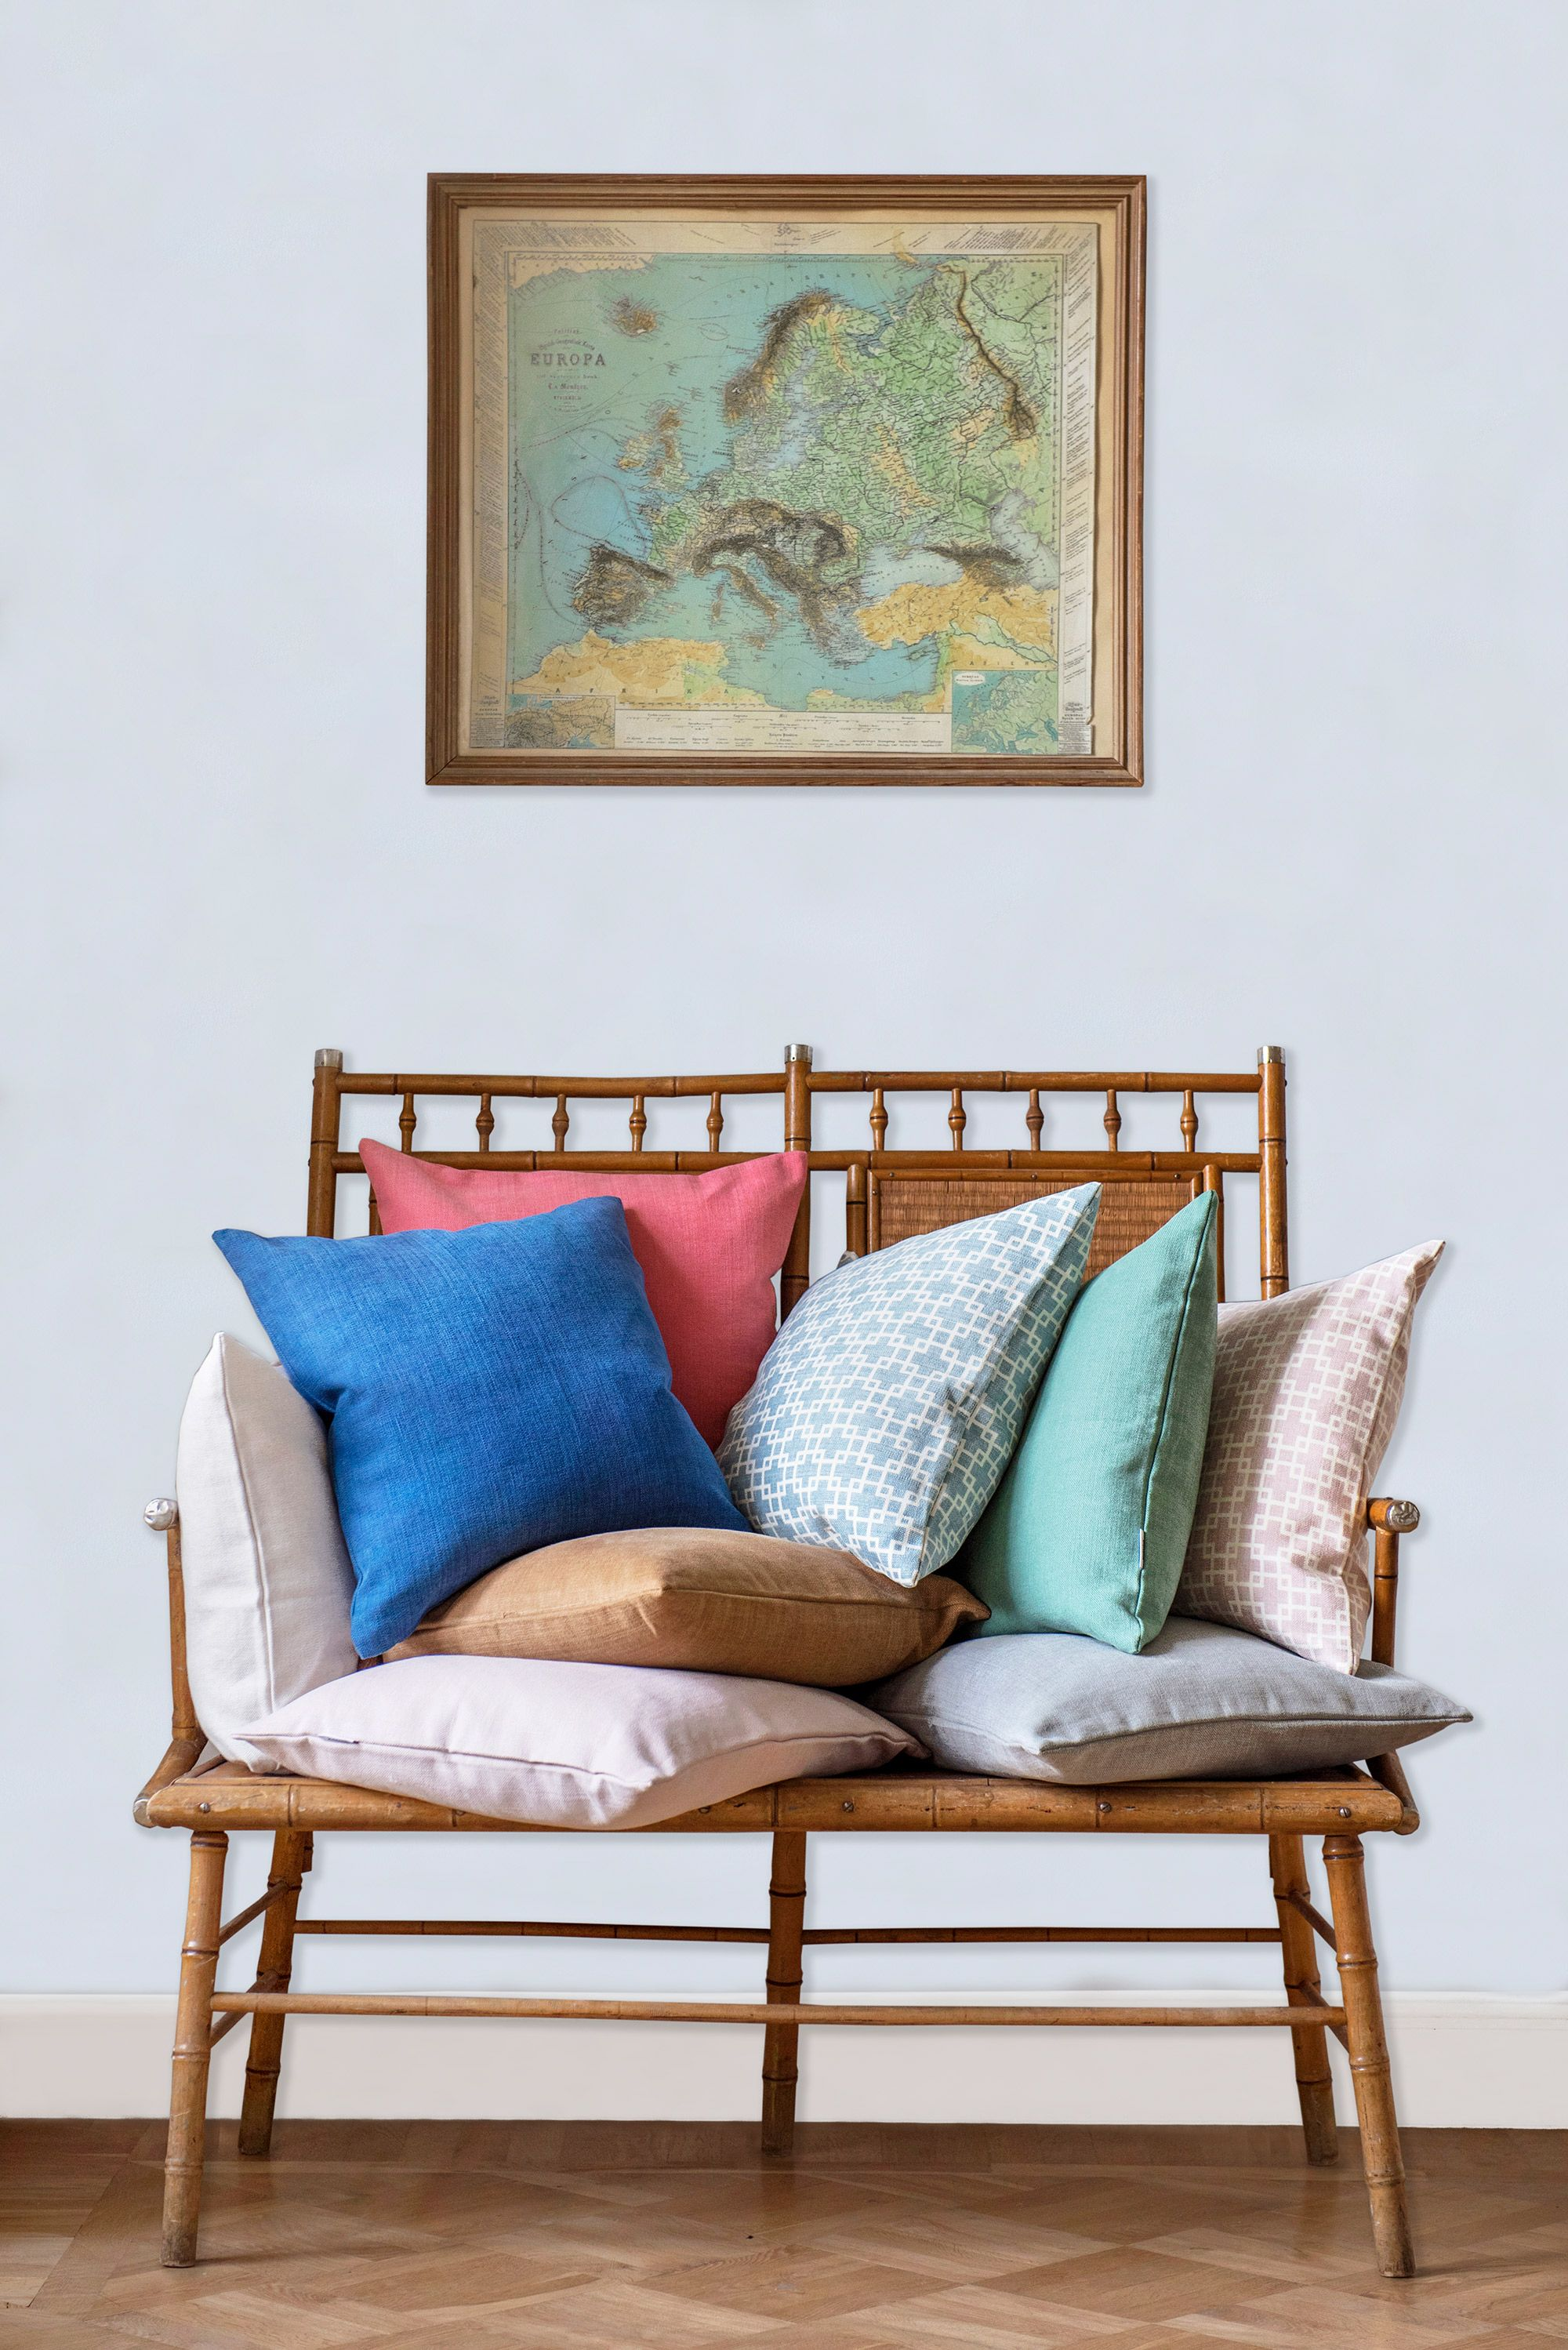 Gentil That Vintage Rattan Bench Though | Scatter Cushions Galore | Bemz X Romo  Cushions For IKEA Furniture | Elevate Your Sofa Game With Sofa Pillows